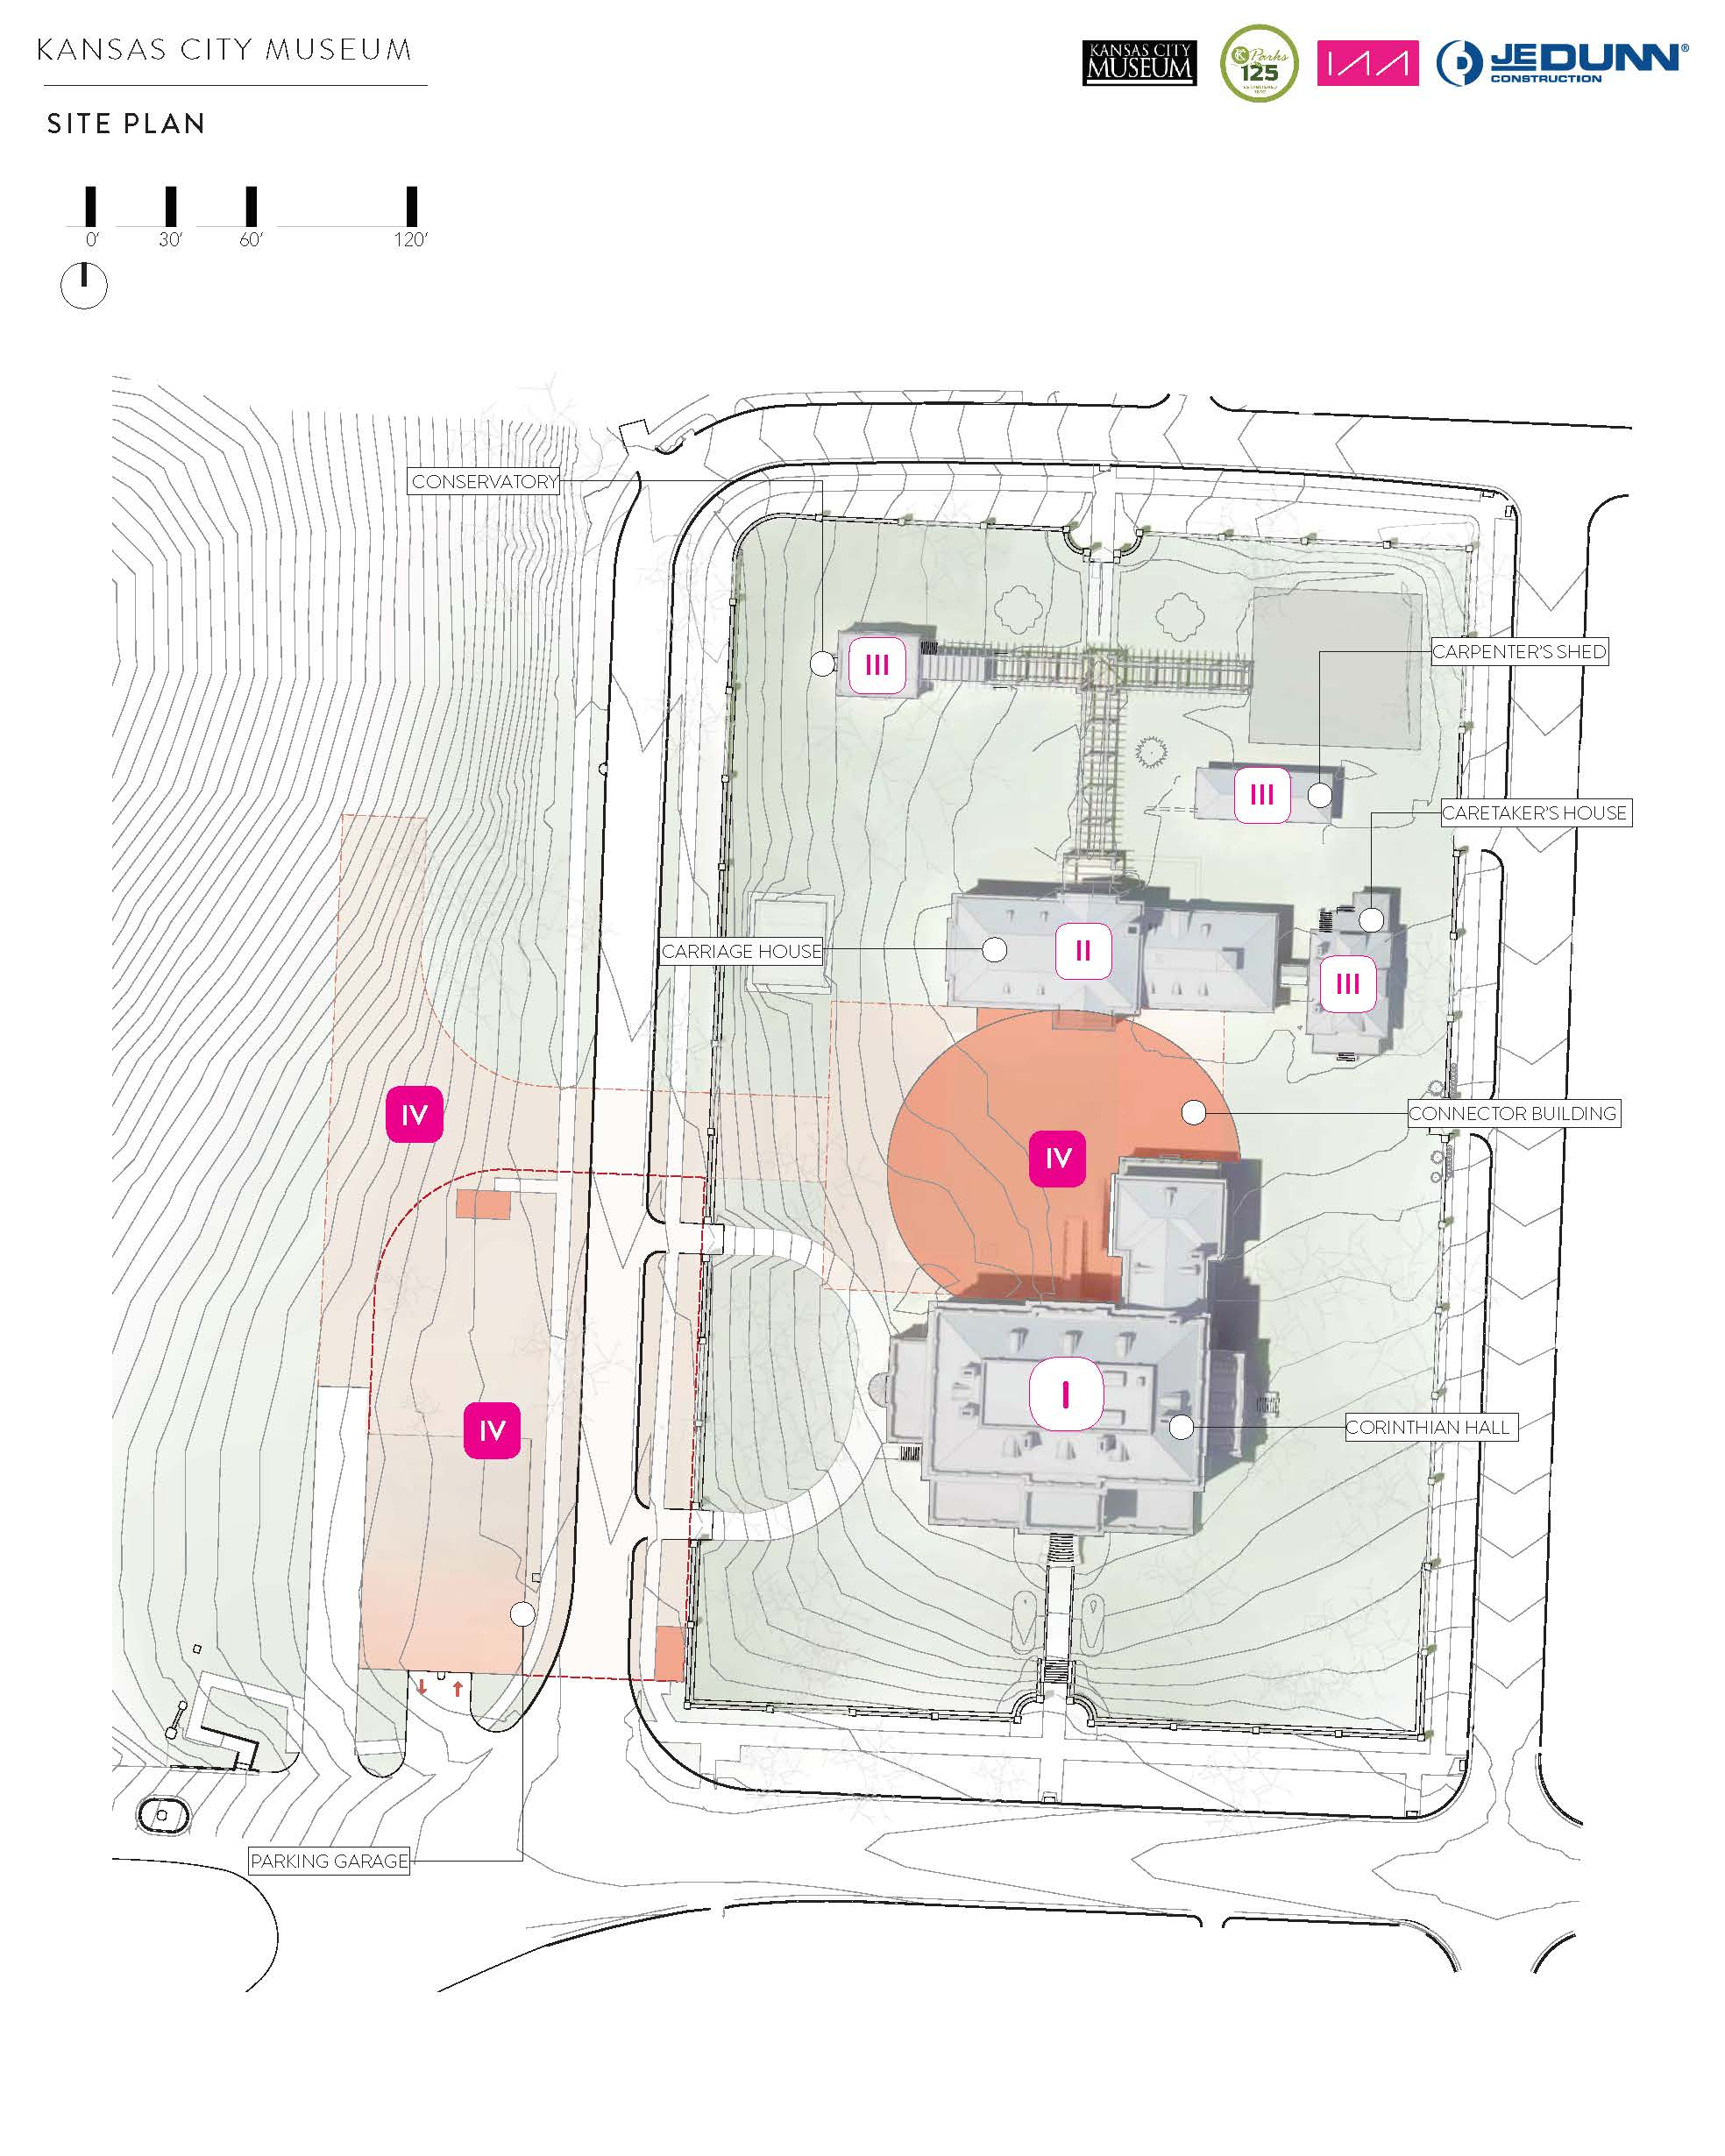 Kansas City Museum Site Plan